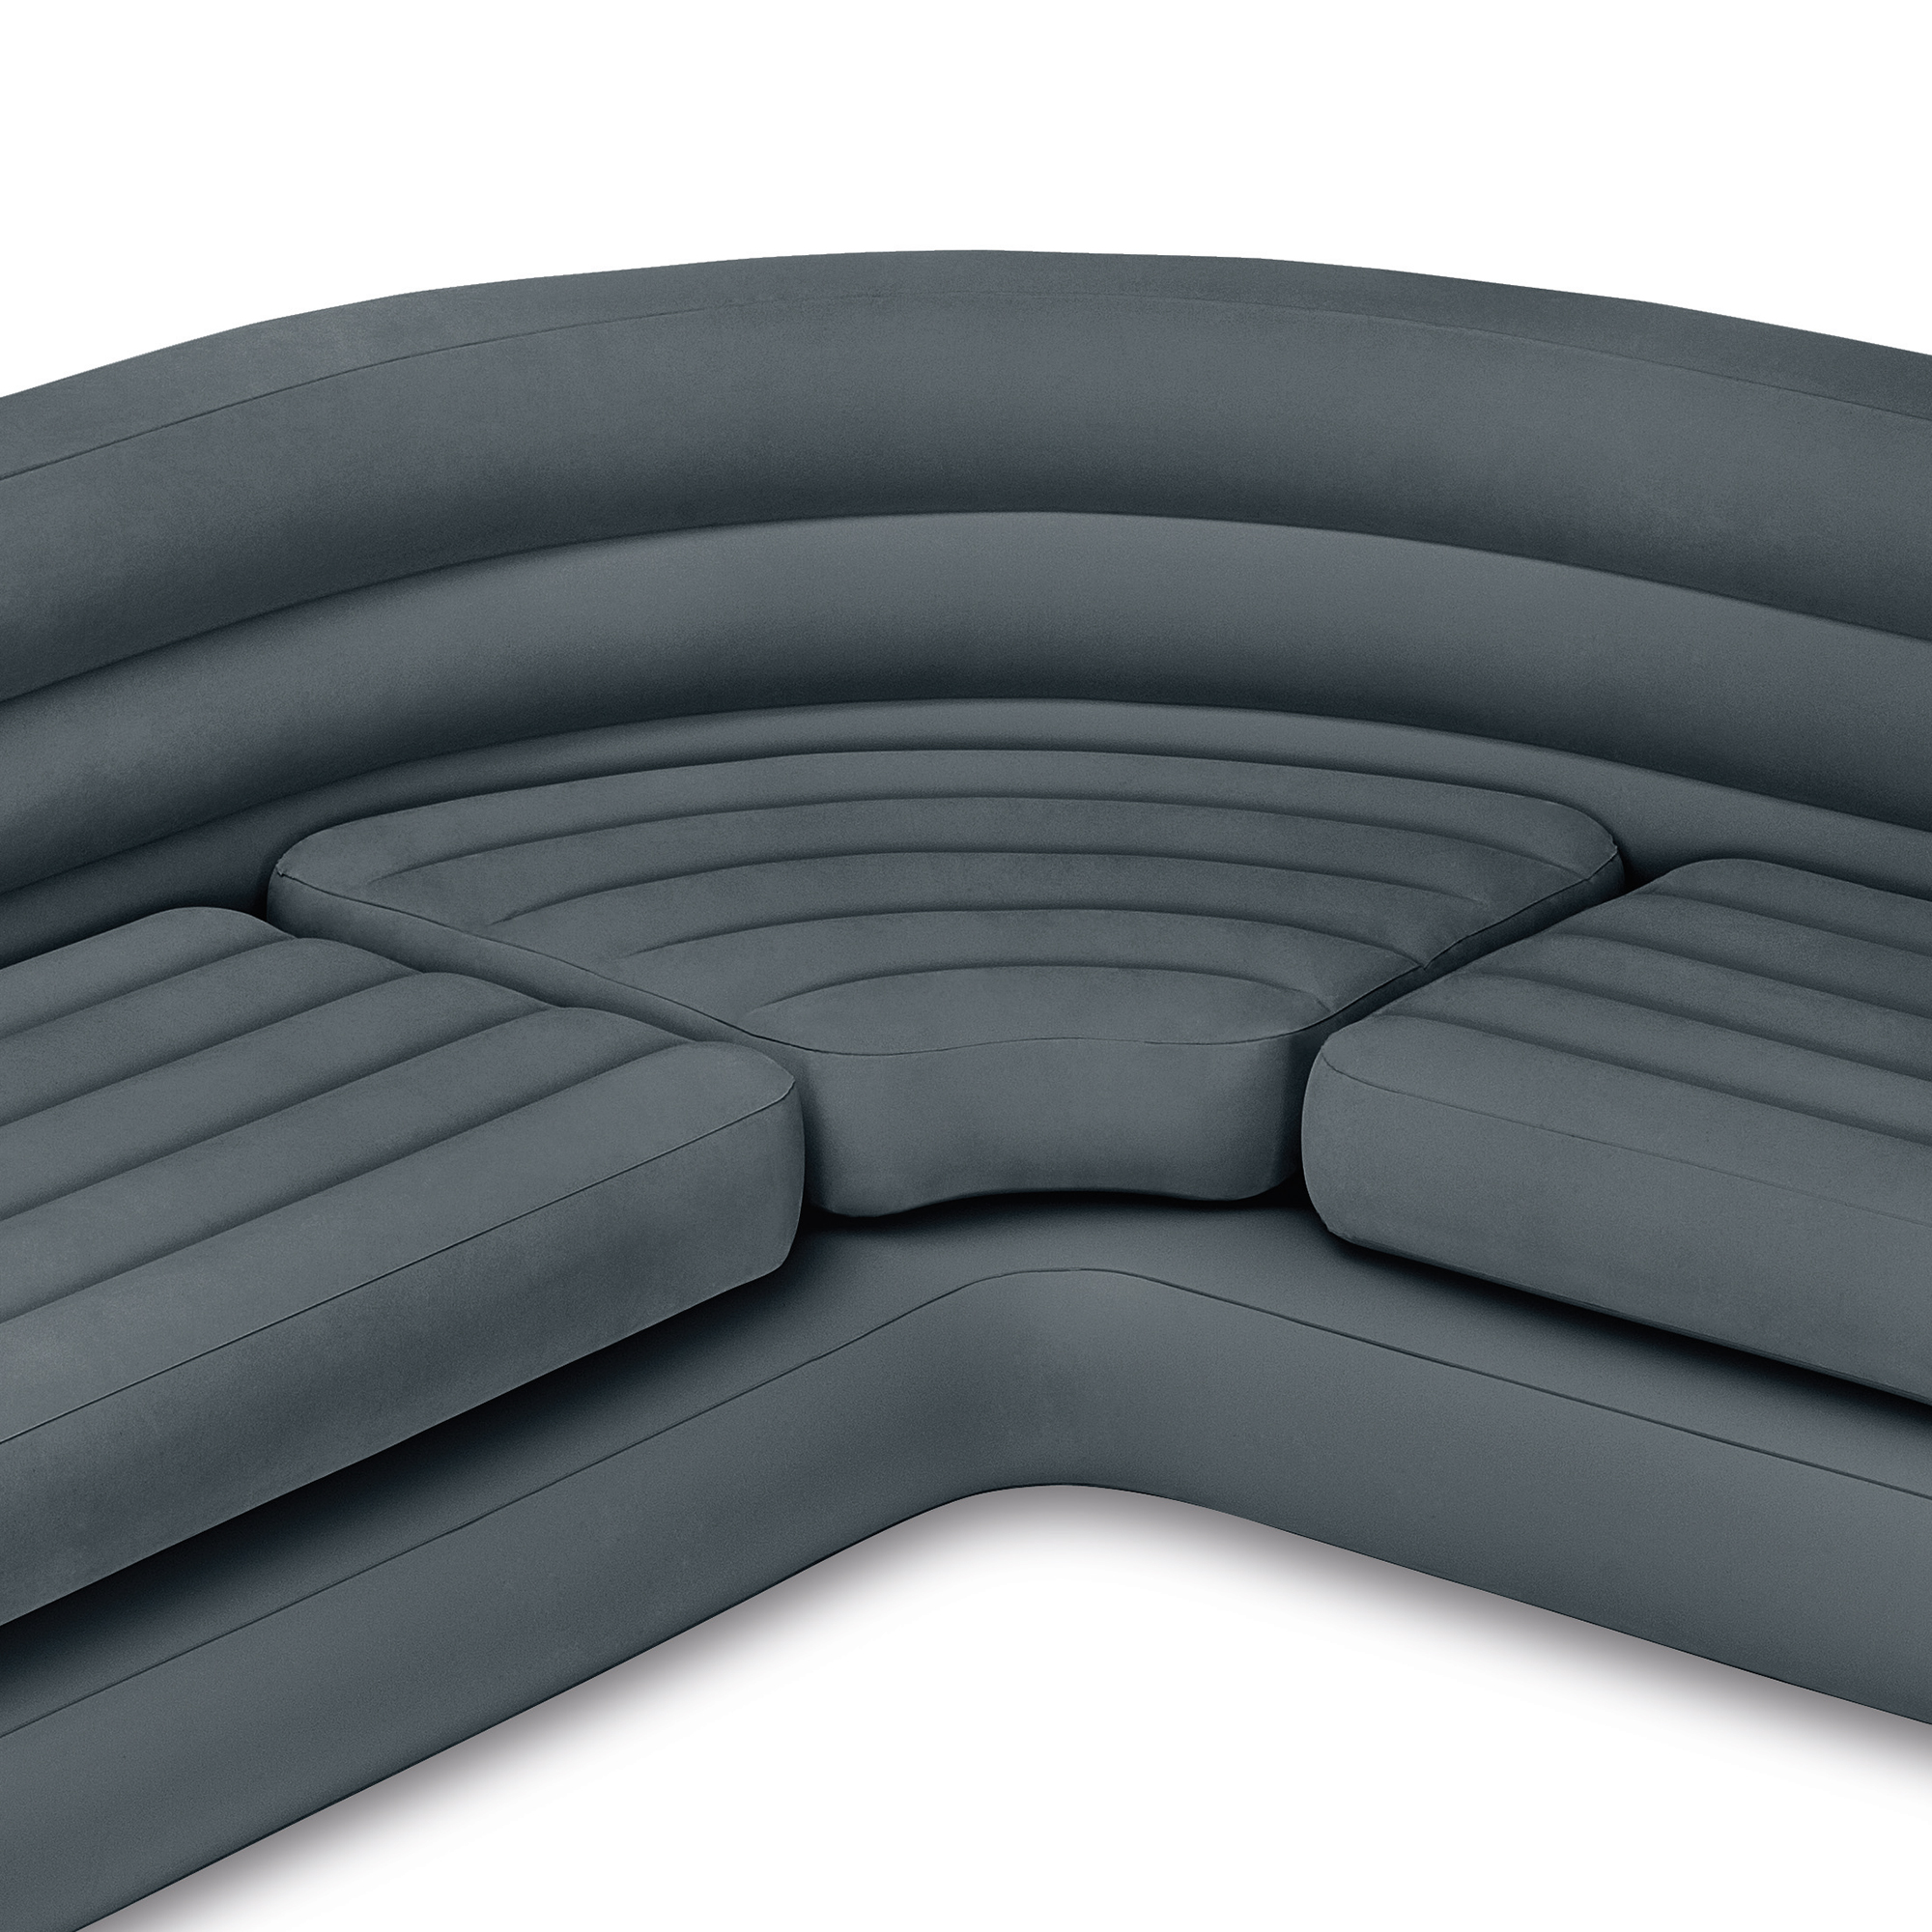 Inflatable Sleeper Sofa Bed: Intex Inflatable Corner Couch Sectional Sofa And Pull-Out